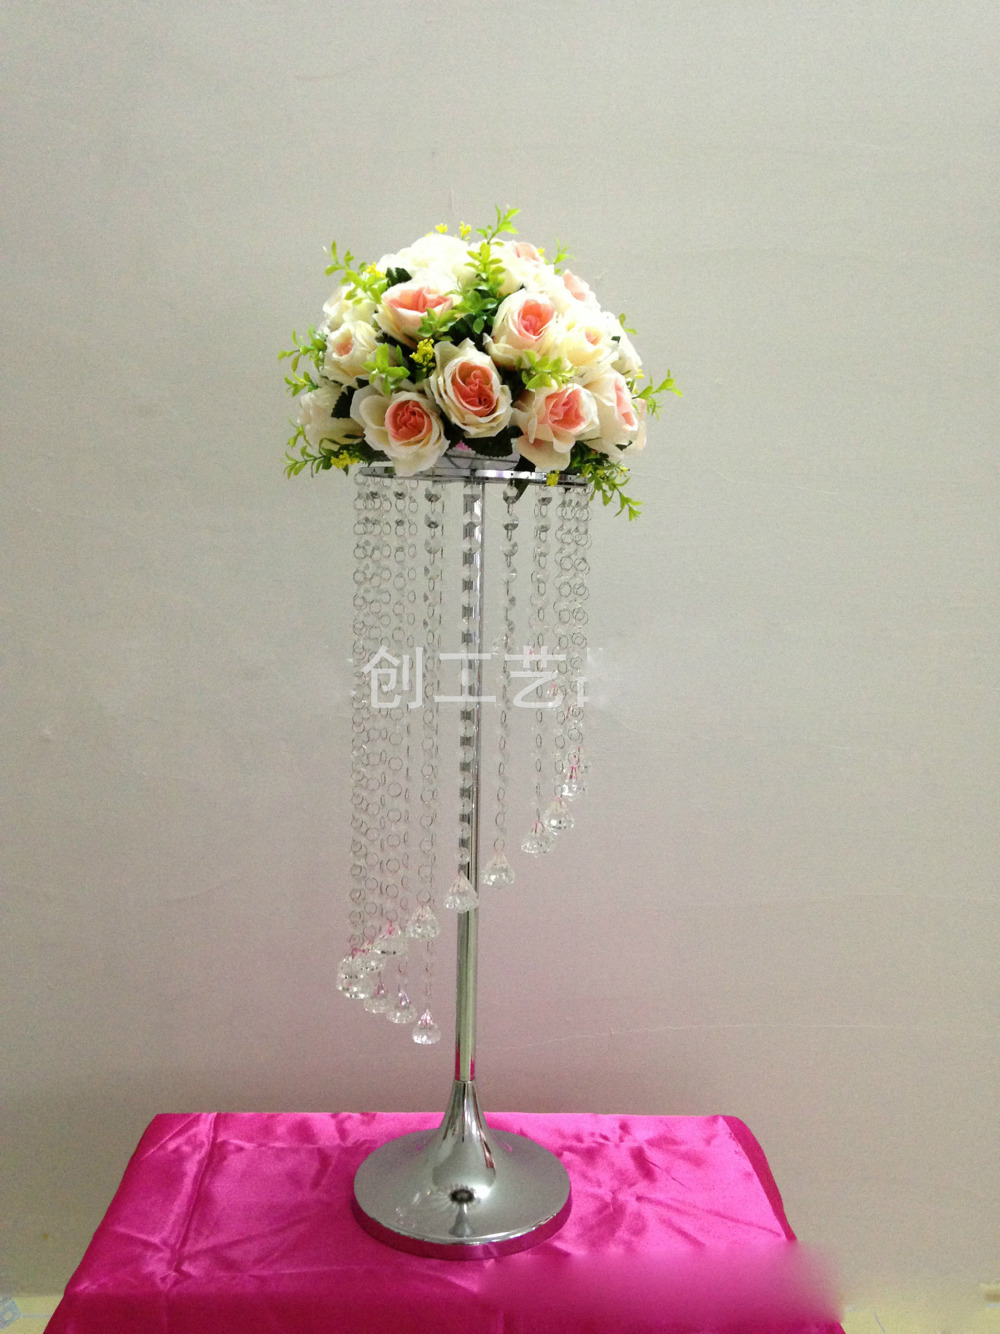 68cm tall hot sale crystal chandelier wedding centerpiece for Chandelier table decorations